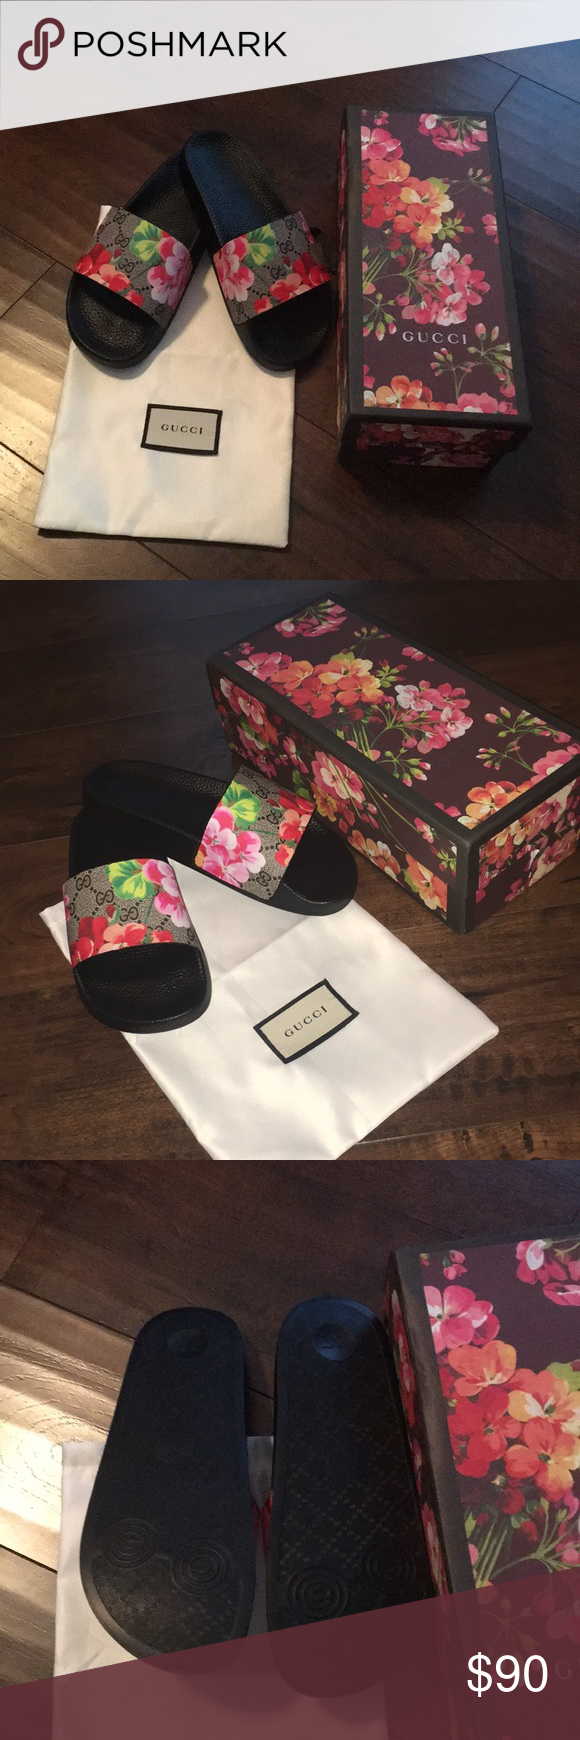 7ace0a5139f NEW IN BOX Blooms Supreme slide sandal Style 408508 KU200 8919. Not branded.